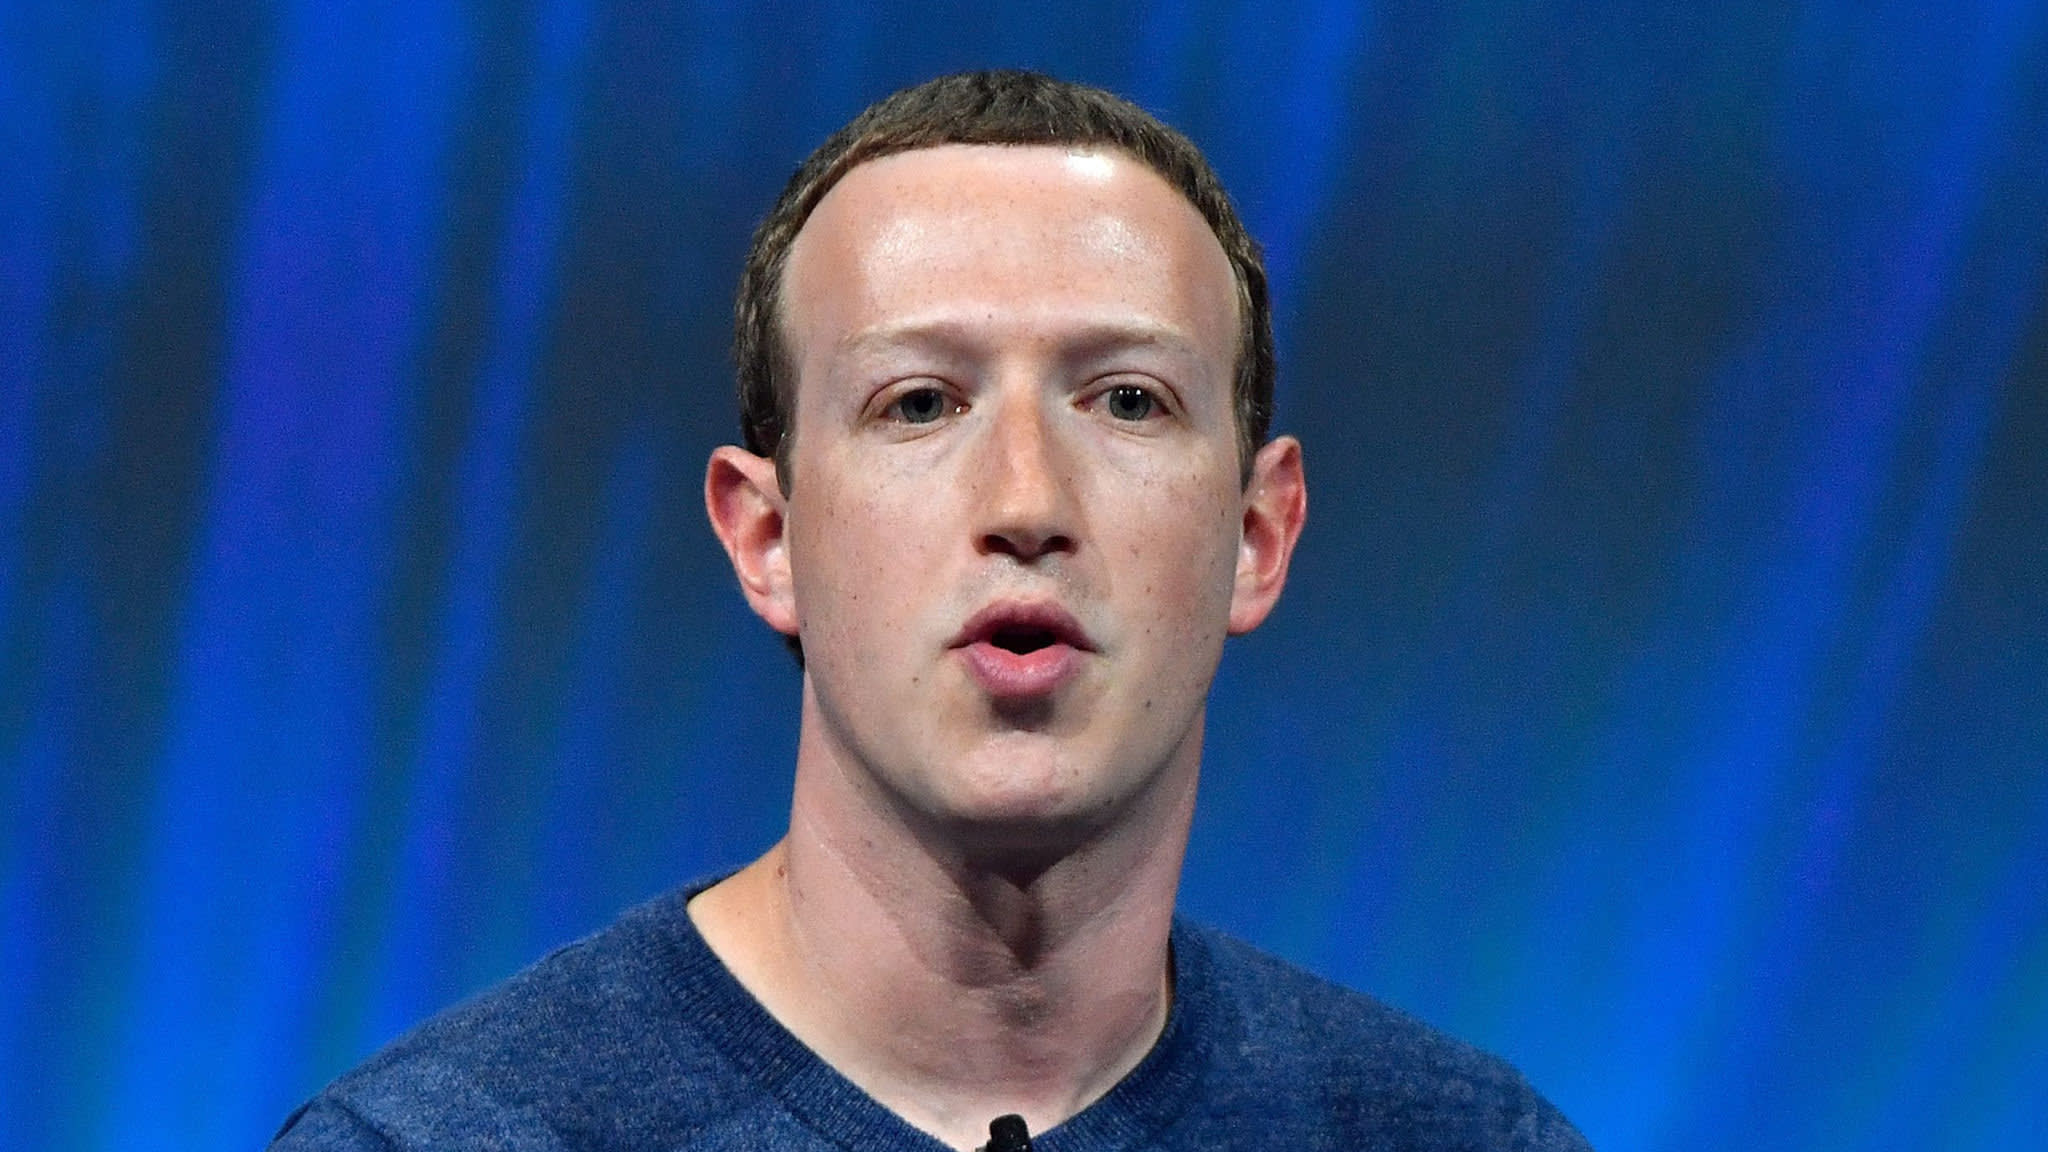 Facebook chief claims no knowledge of Soros smear campaign